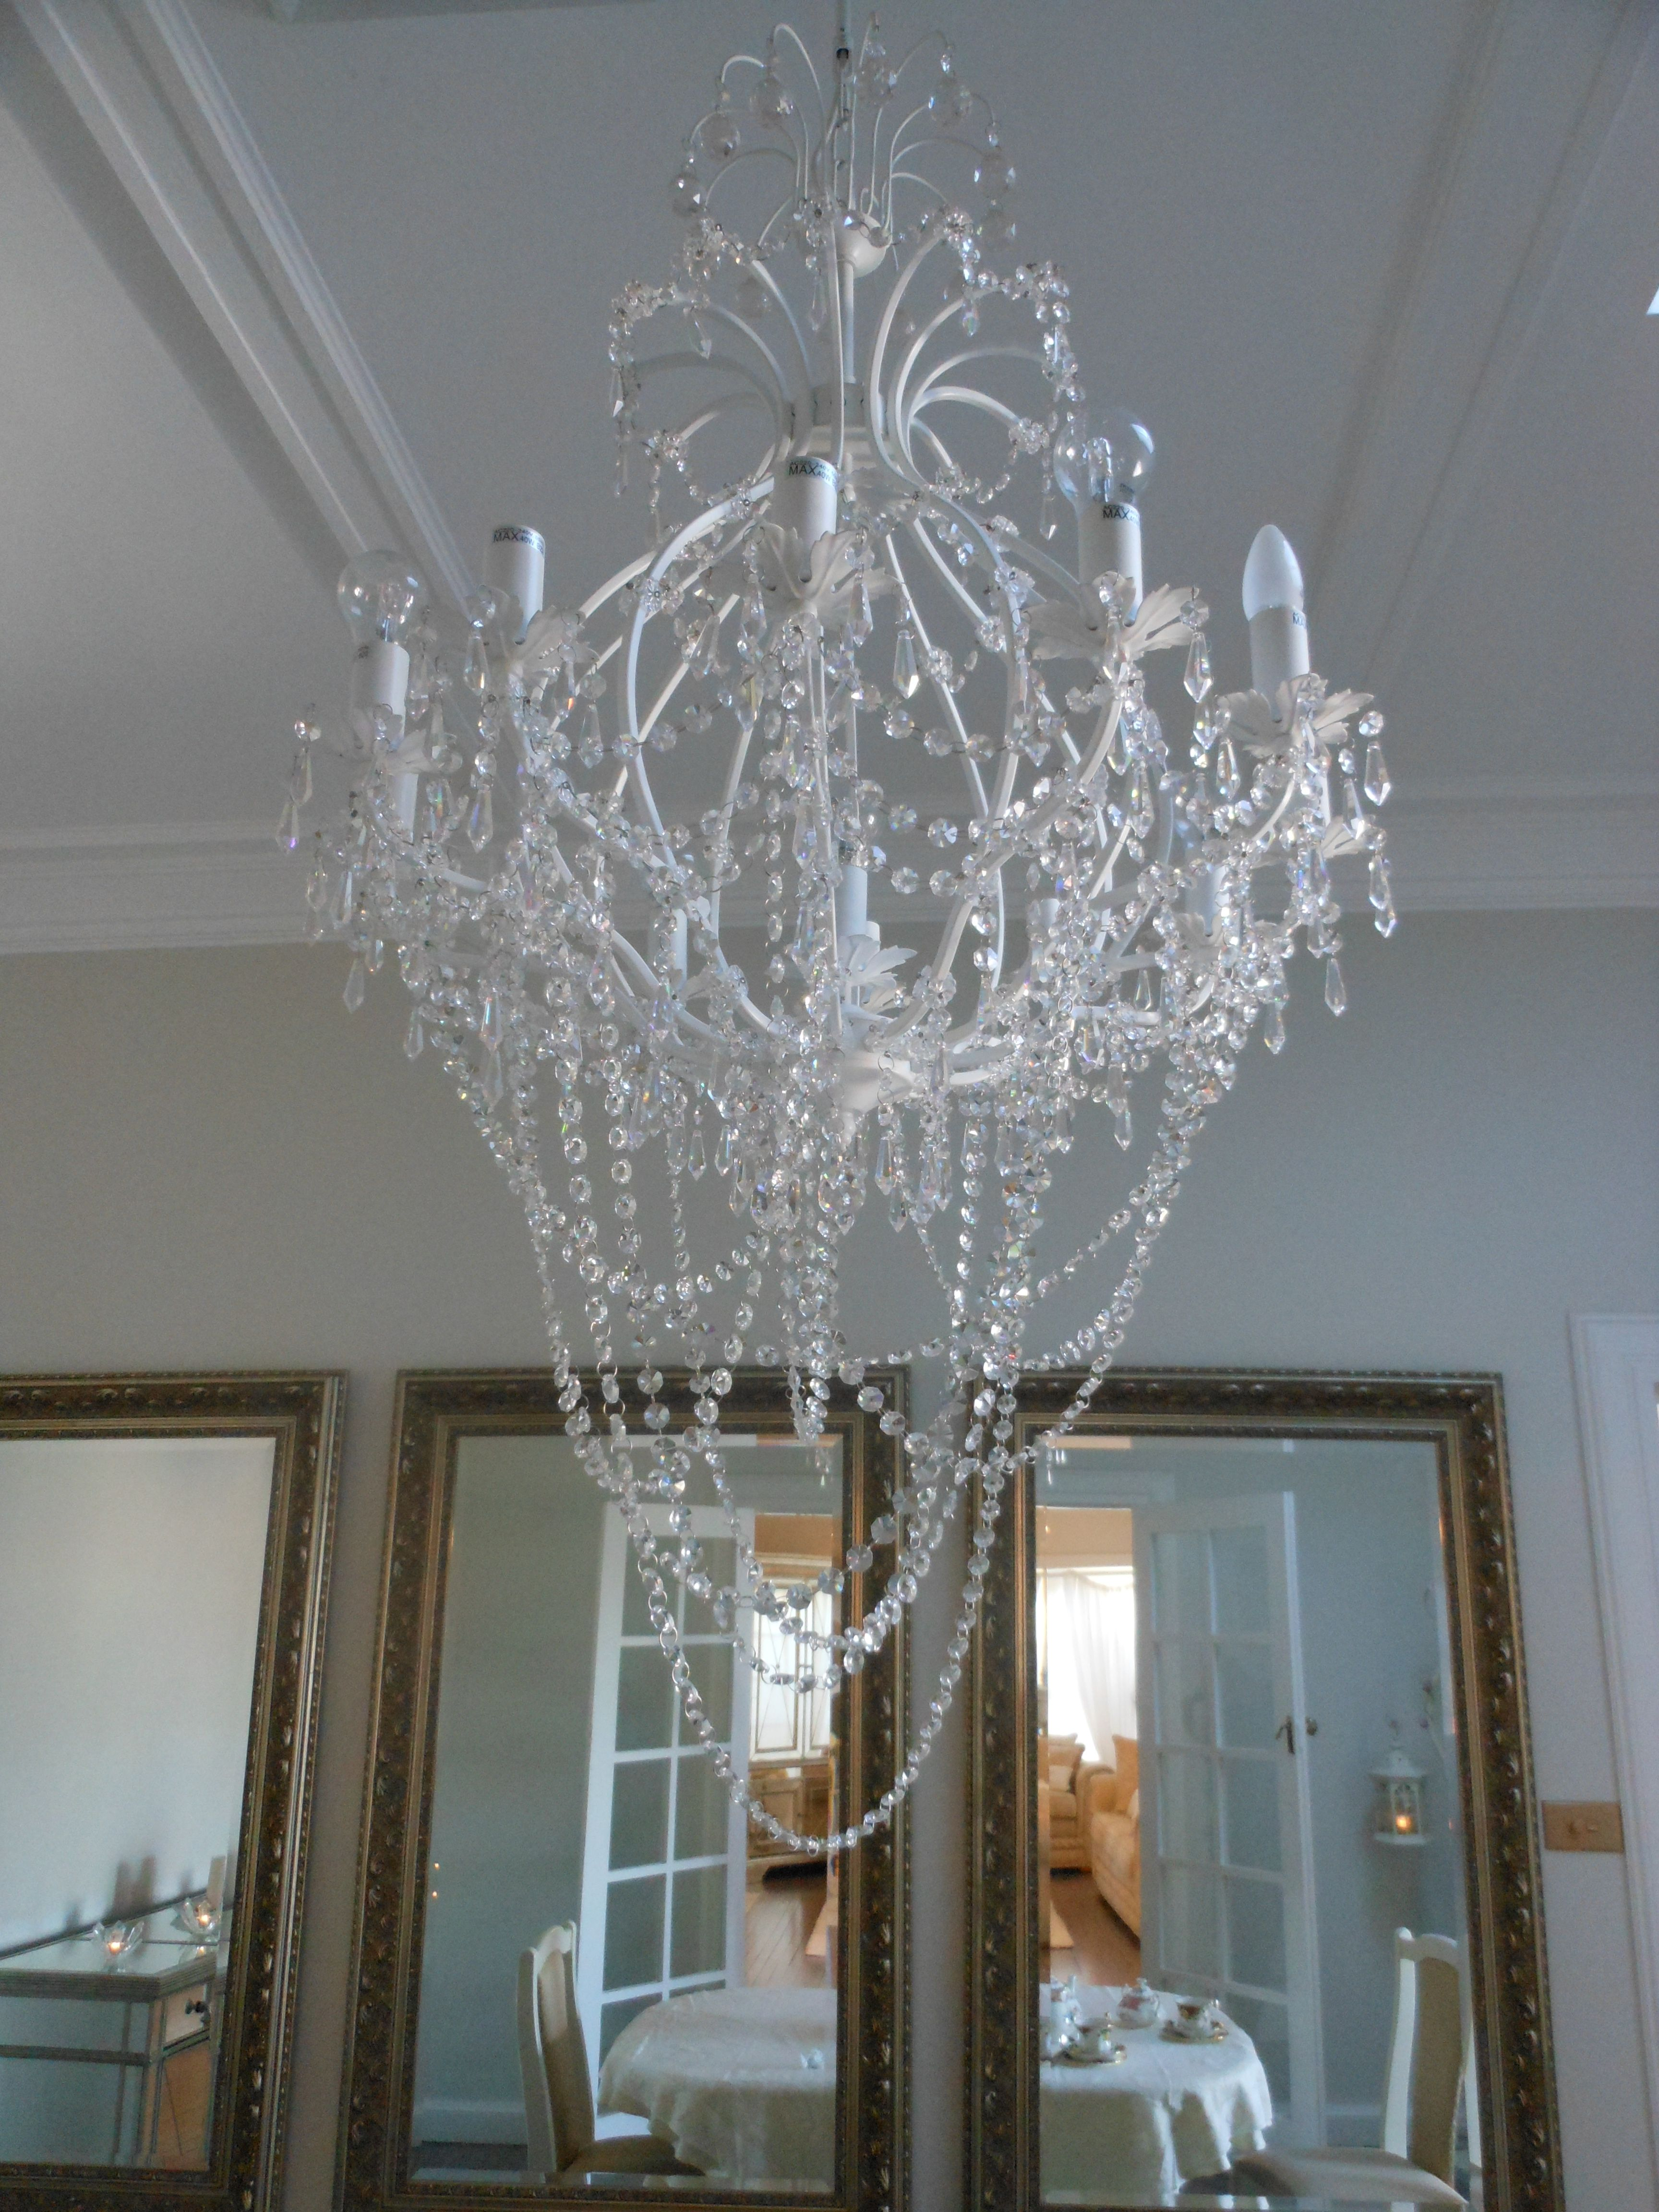 I Like The Loose Strands Of Crystals Lighting The Way - Loose chandelier crystals